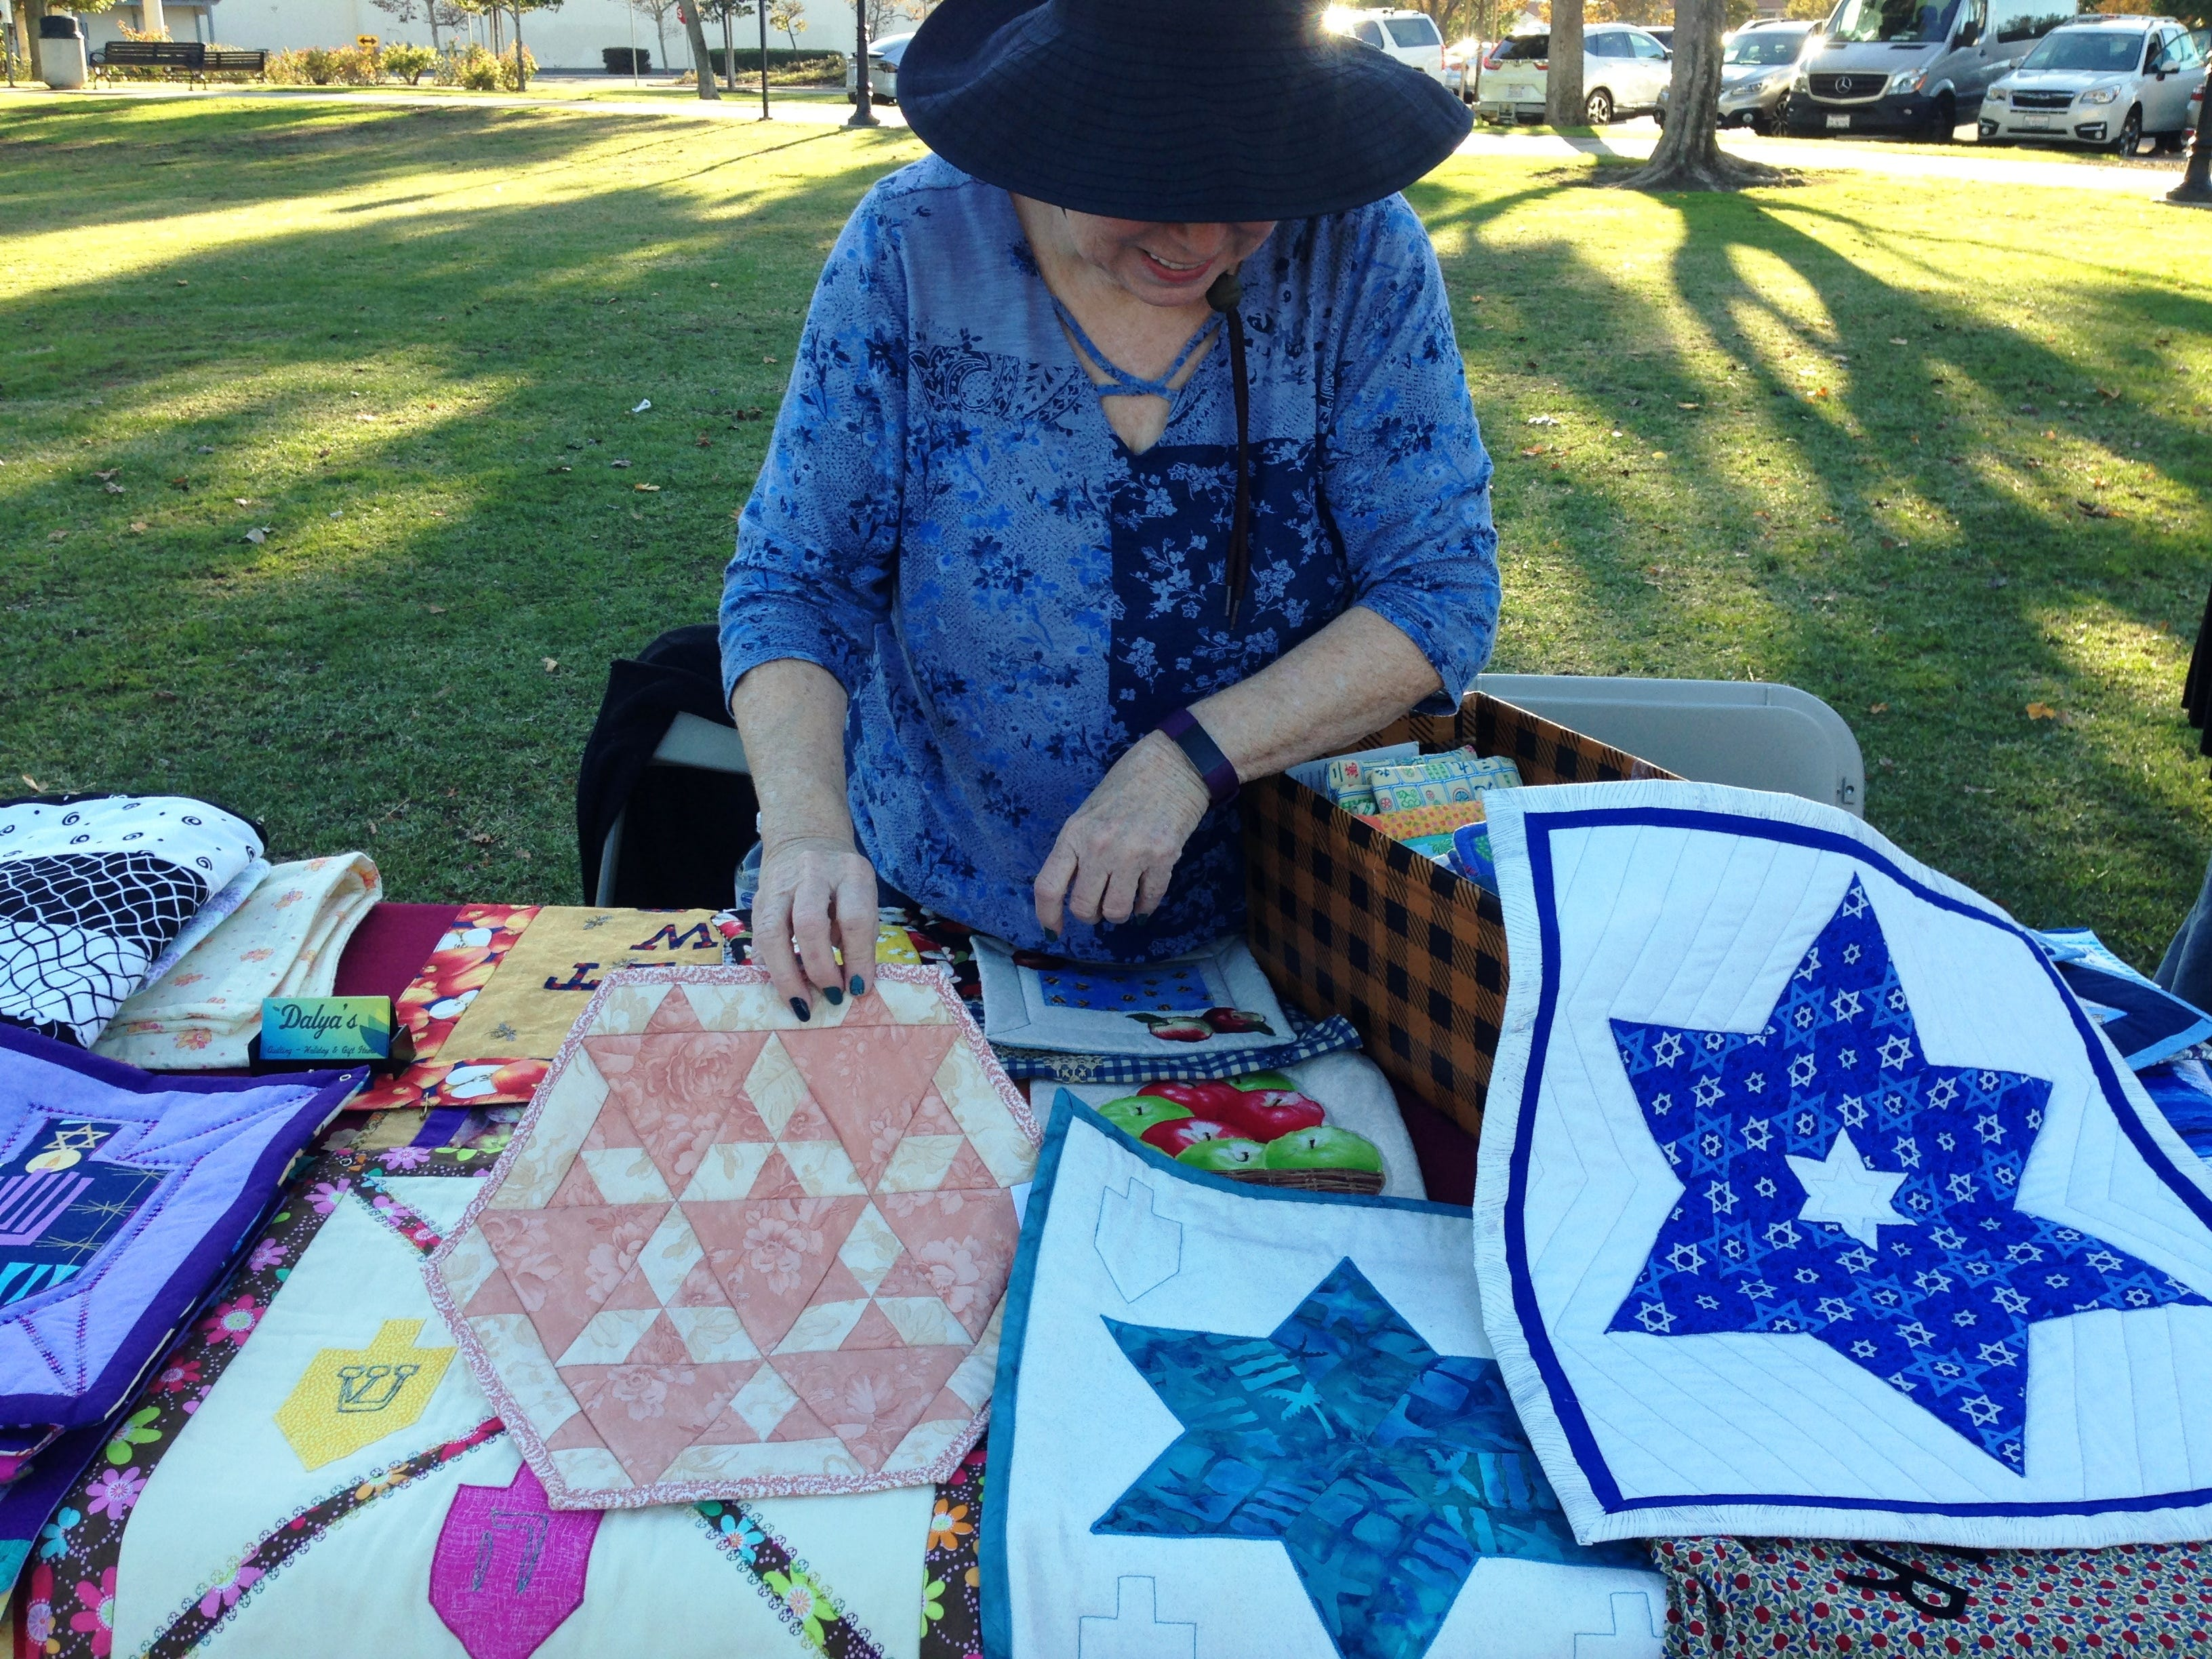 Dalya Dektor displays her handmade quilts on Sunday at Chabad of Camarillo's 16th annual Hanukkah Festival and Grand Menorah Lighting in Constitution Park in Camarillo.